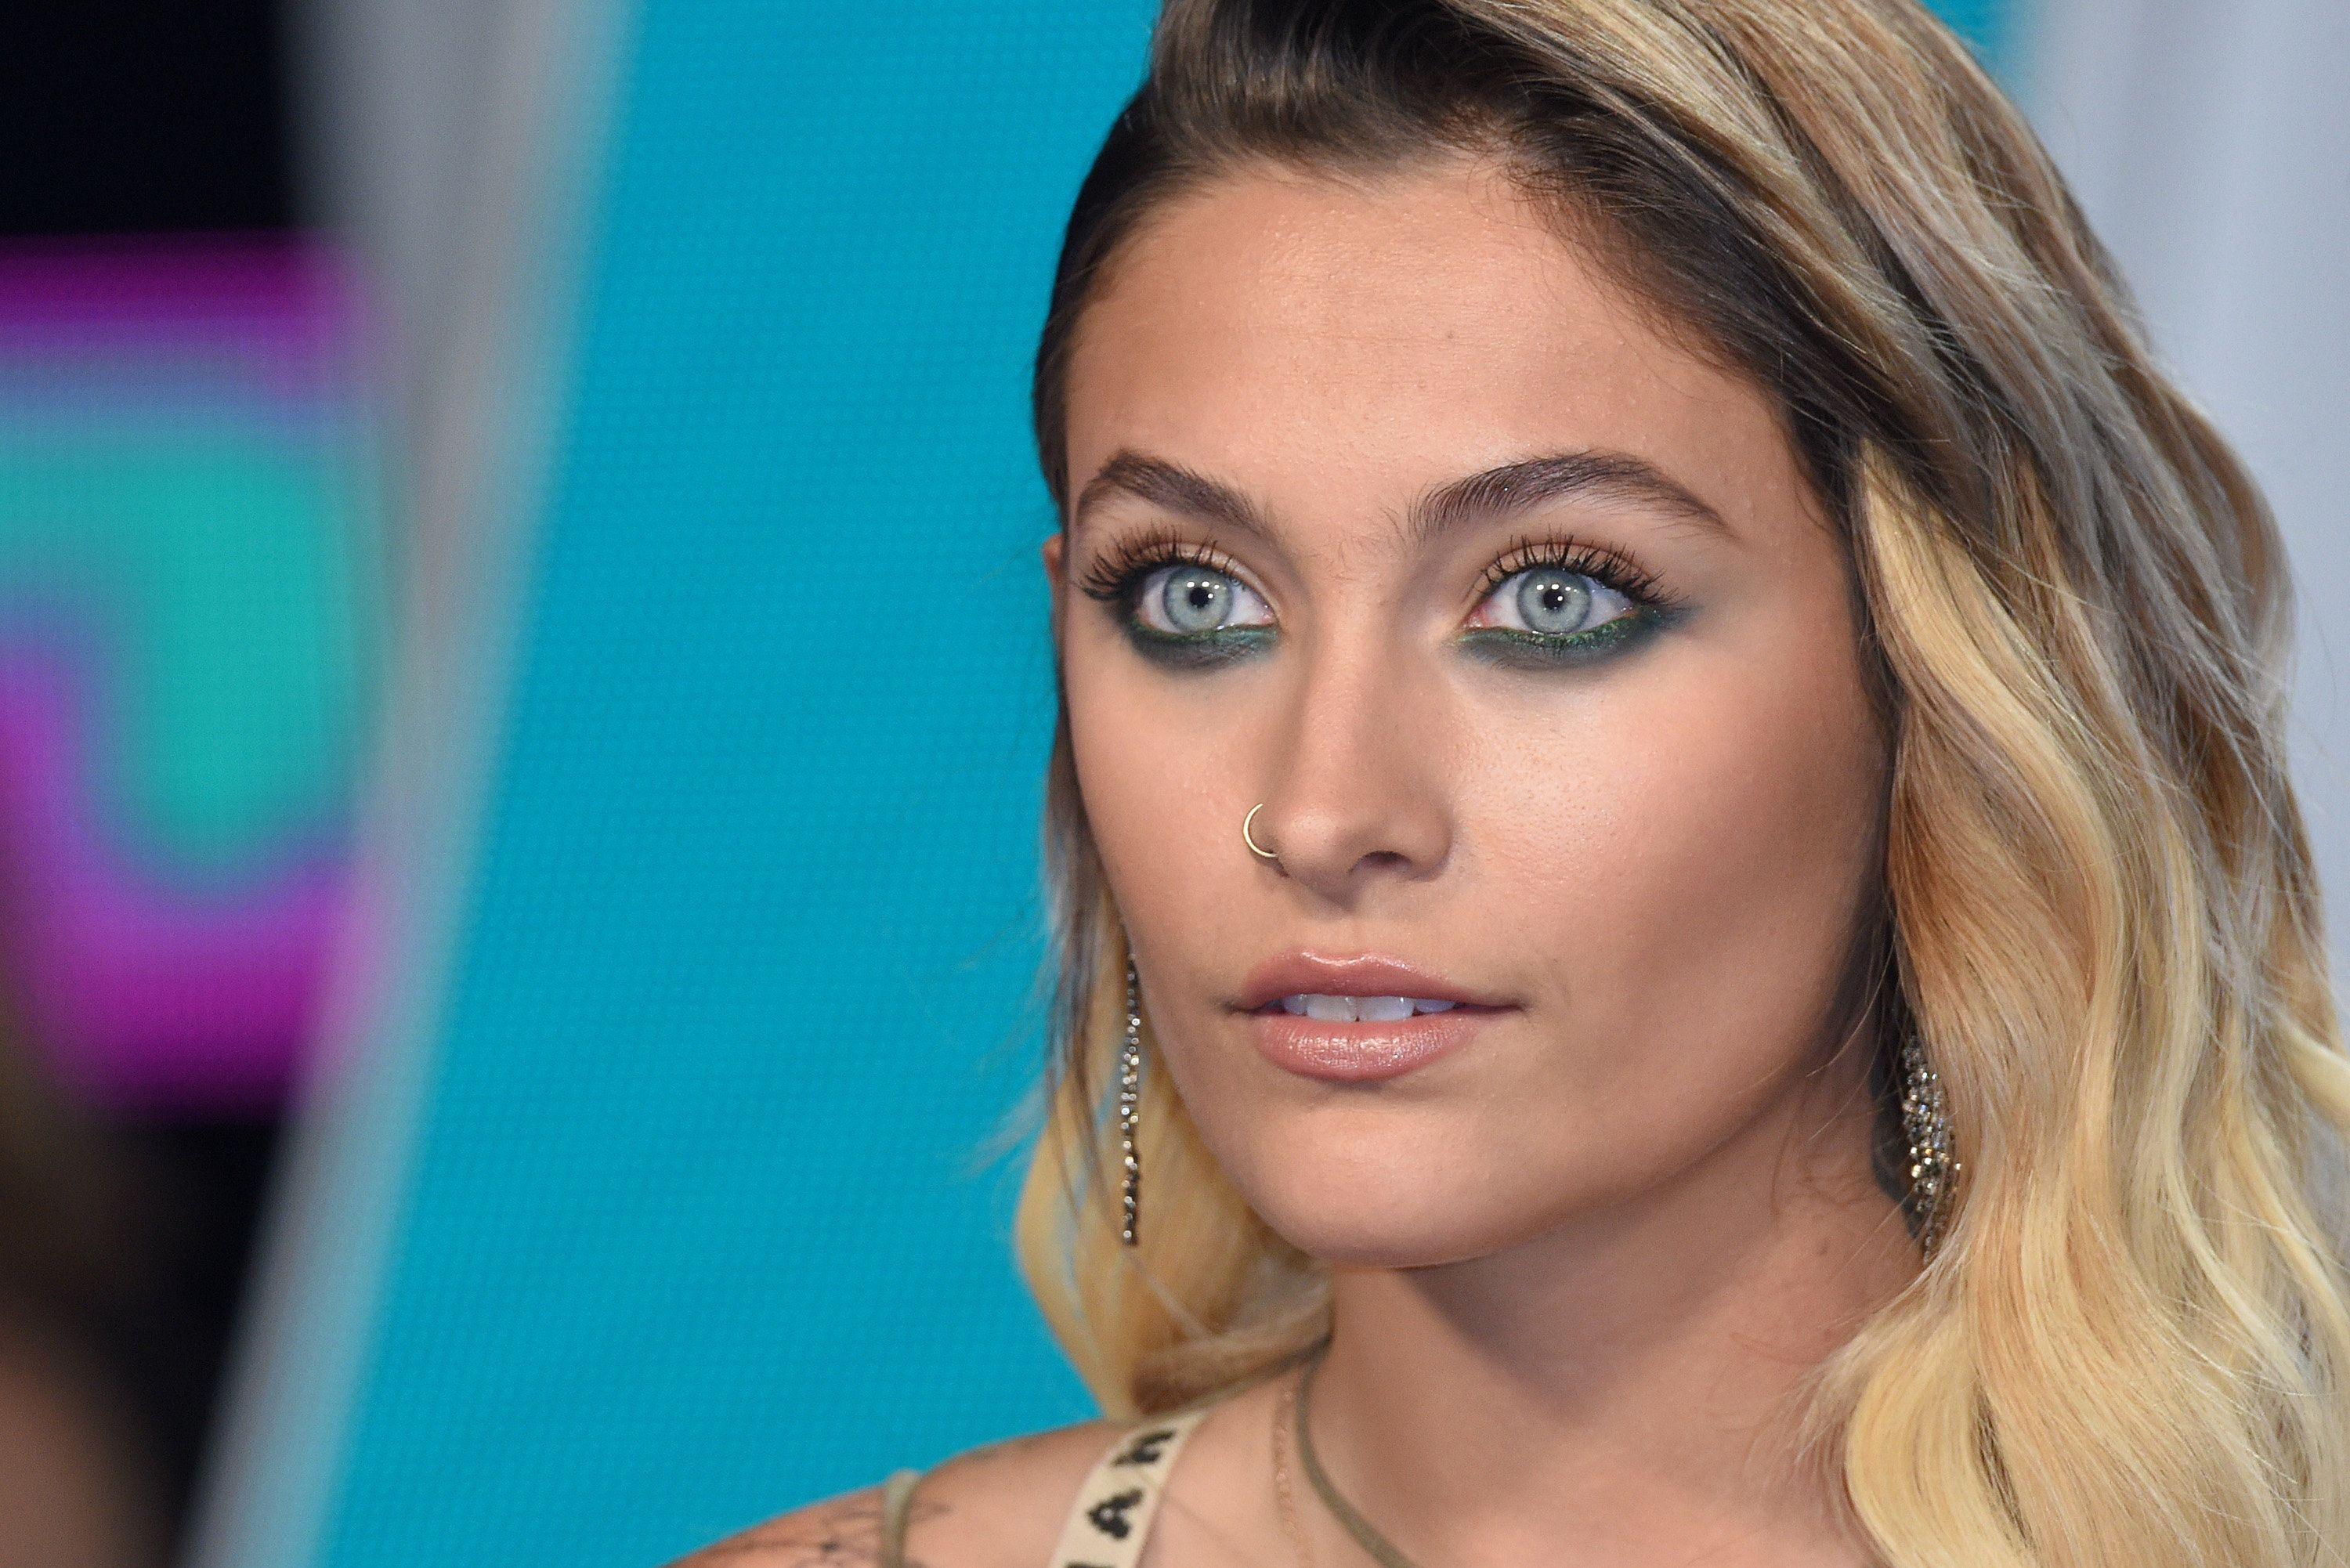 Paris Jackson unveils her new tattoo in semi-nude photo